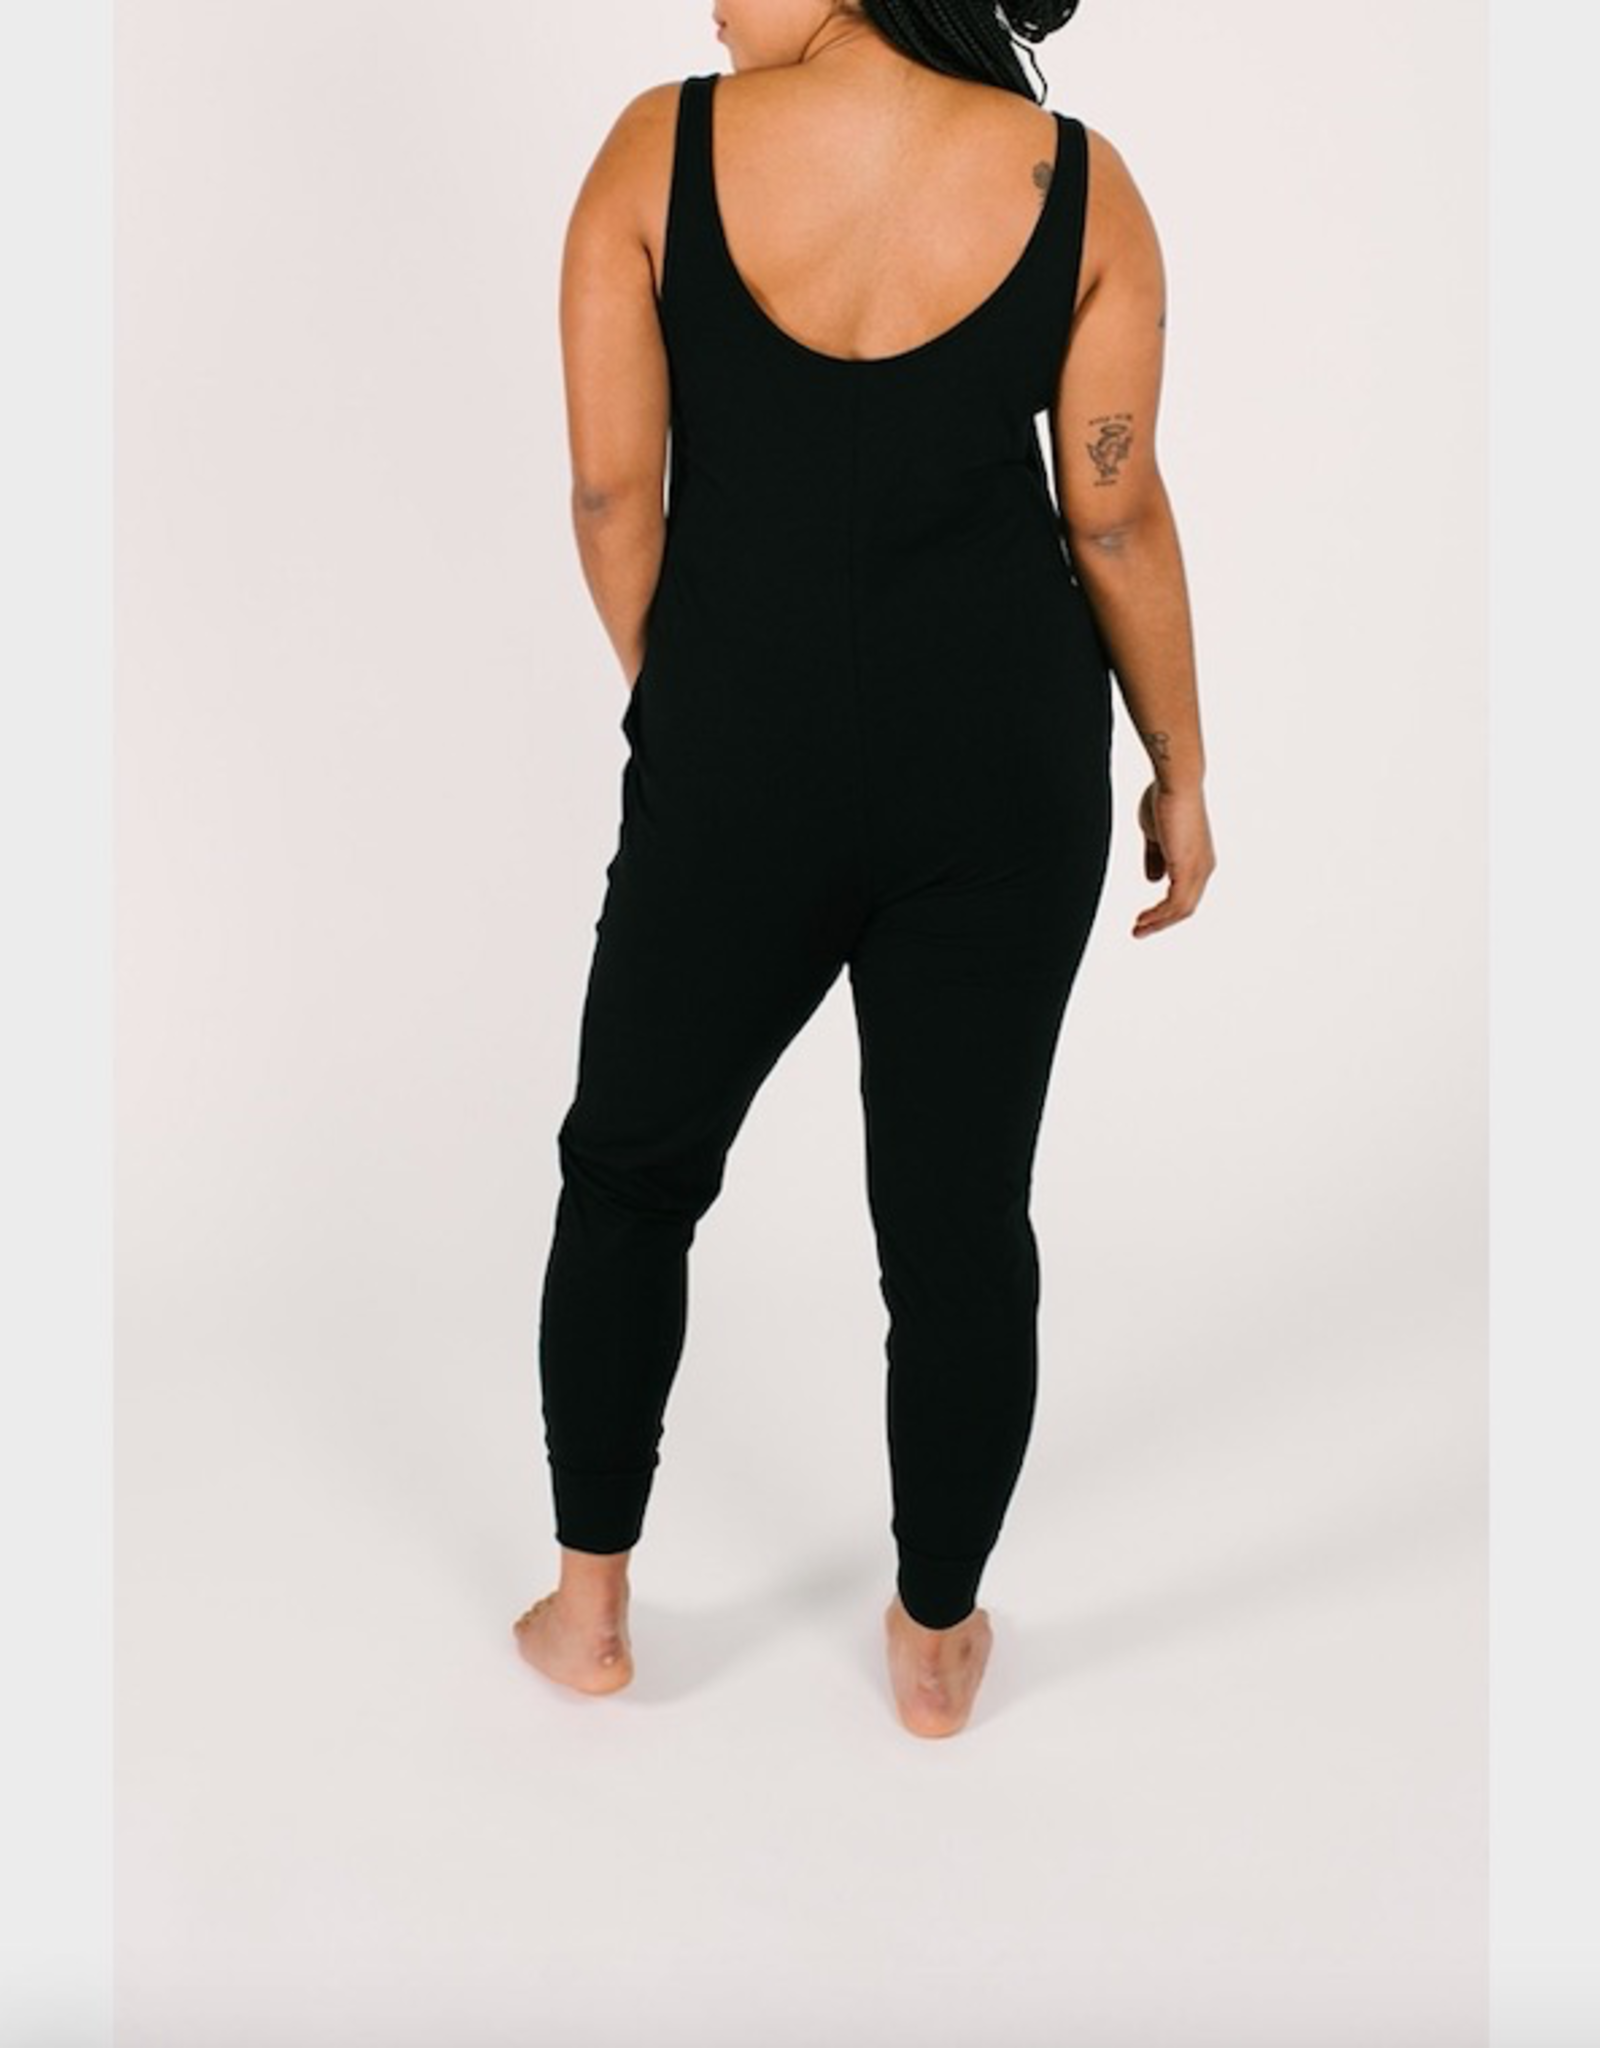 Smash + Tess The New Tuesday Romper in Midnight Black